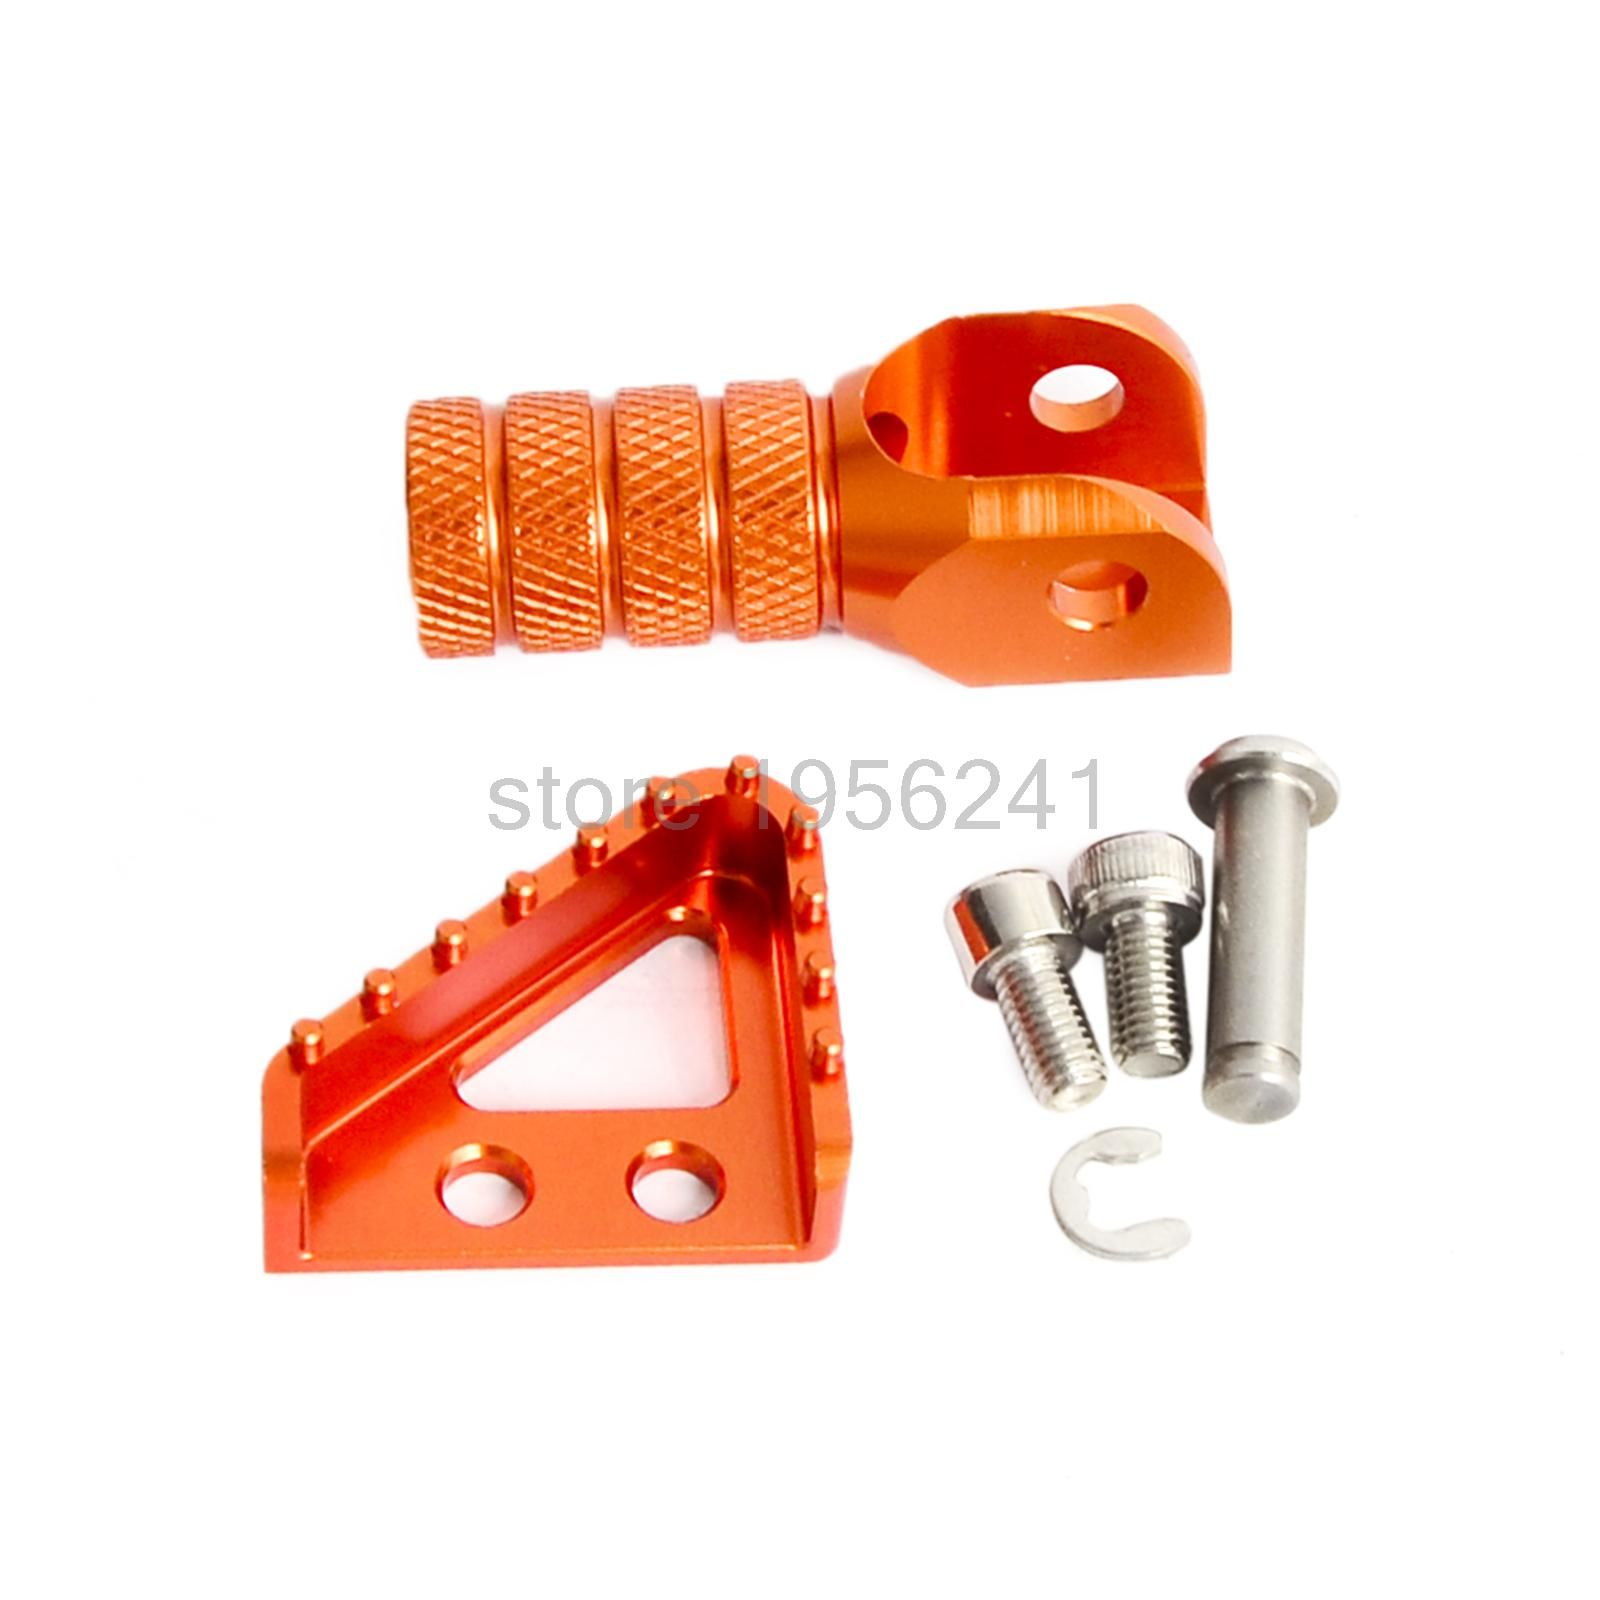 Billet Rear Brake Pedal Step Tips And Gear Shifter Lever Tip For KTM SX SX-F EXC EXC-F XCW XCF SMC SMR 50 65 85 500 560 660 690